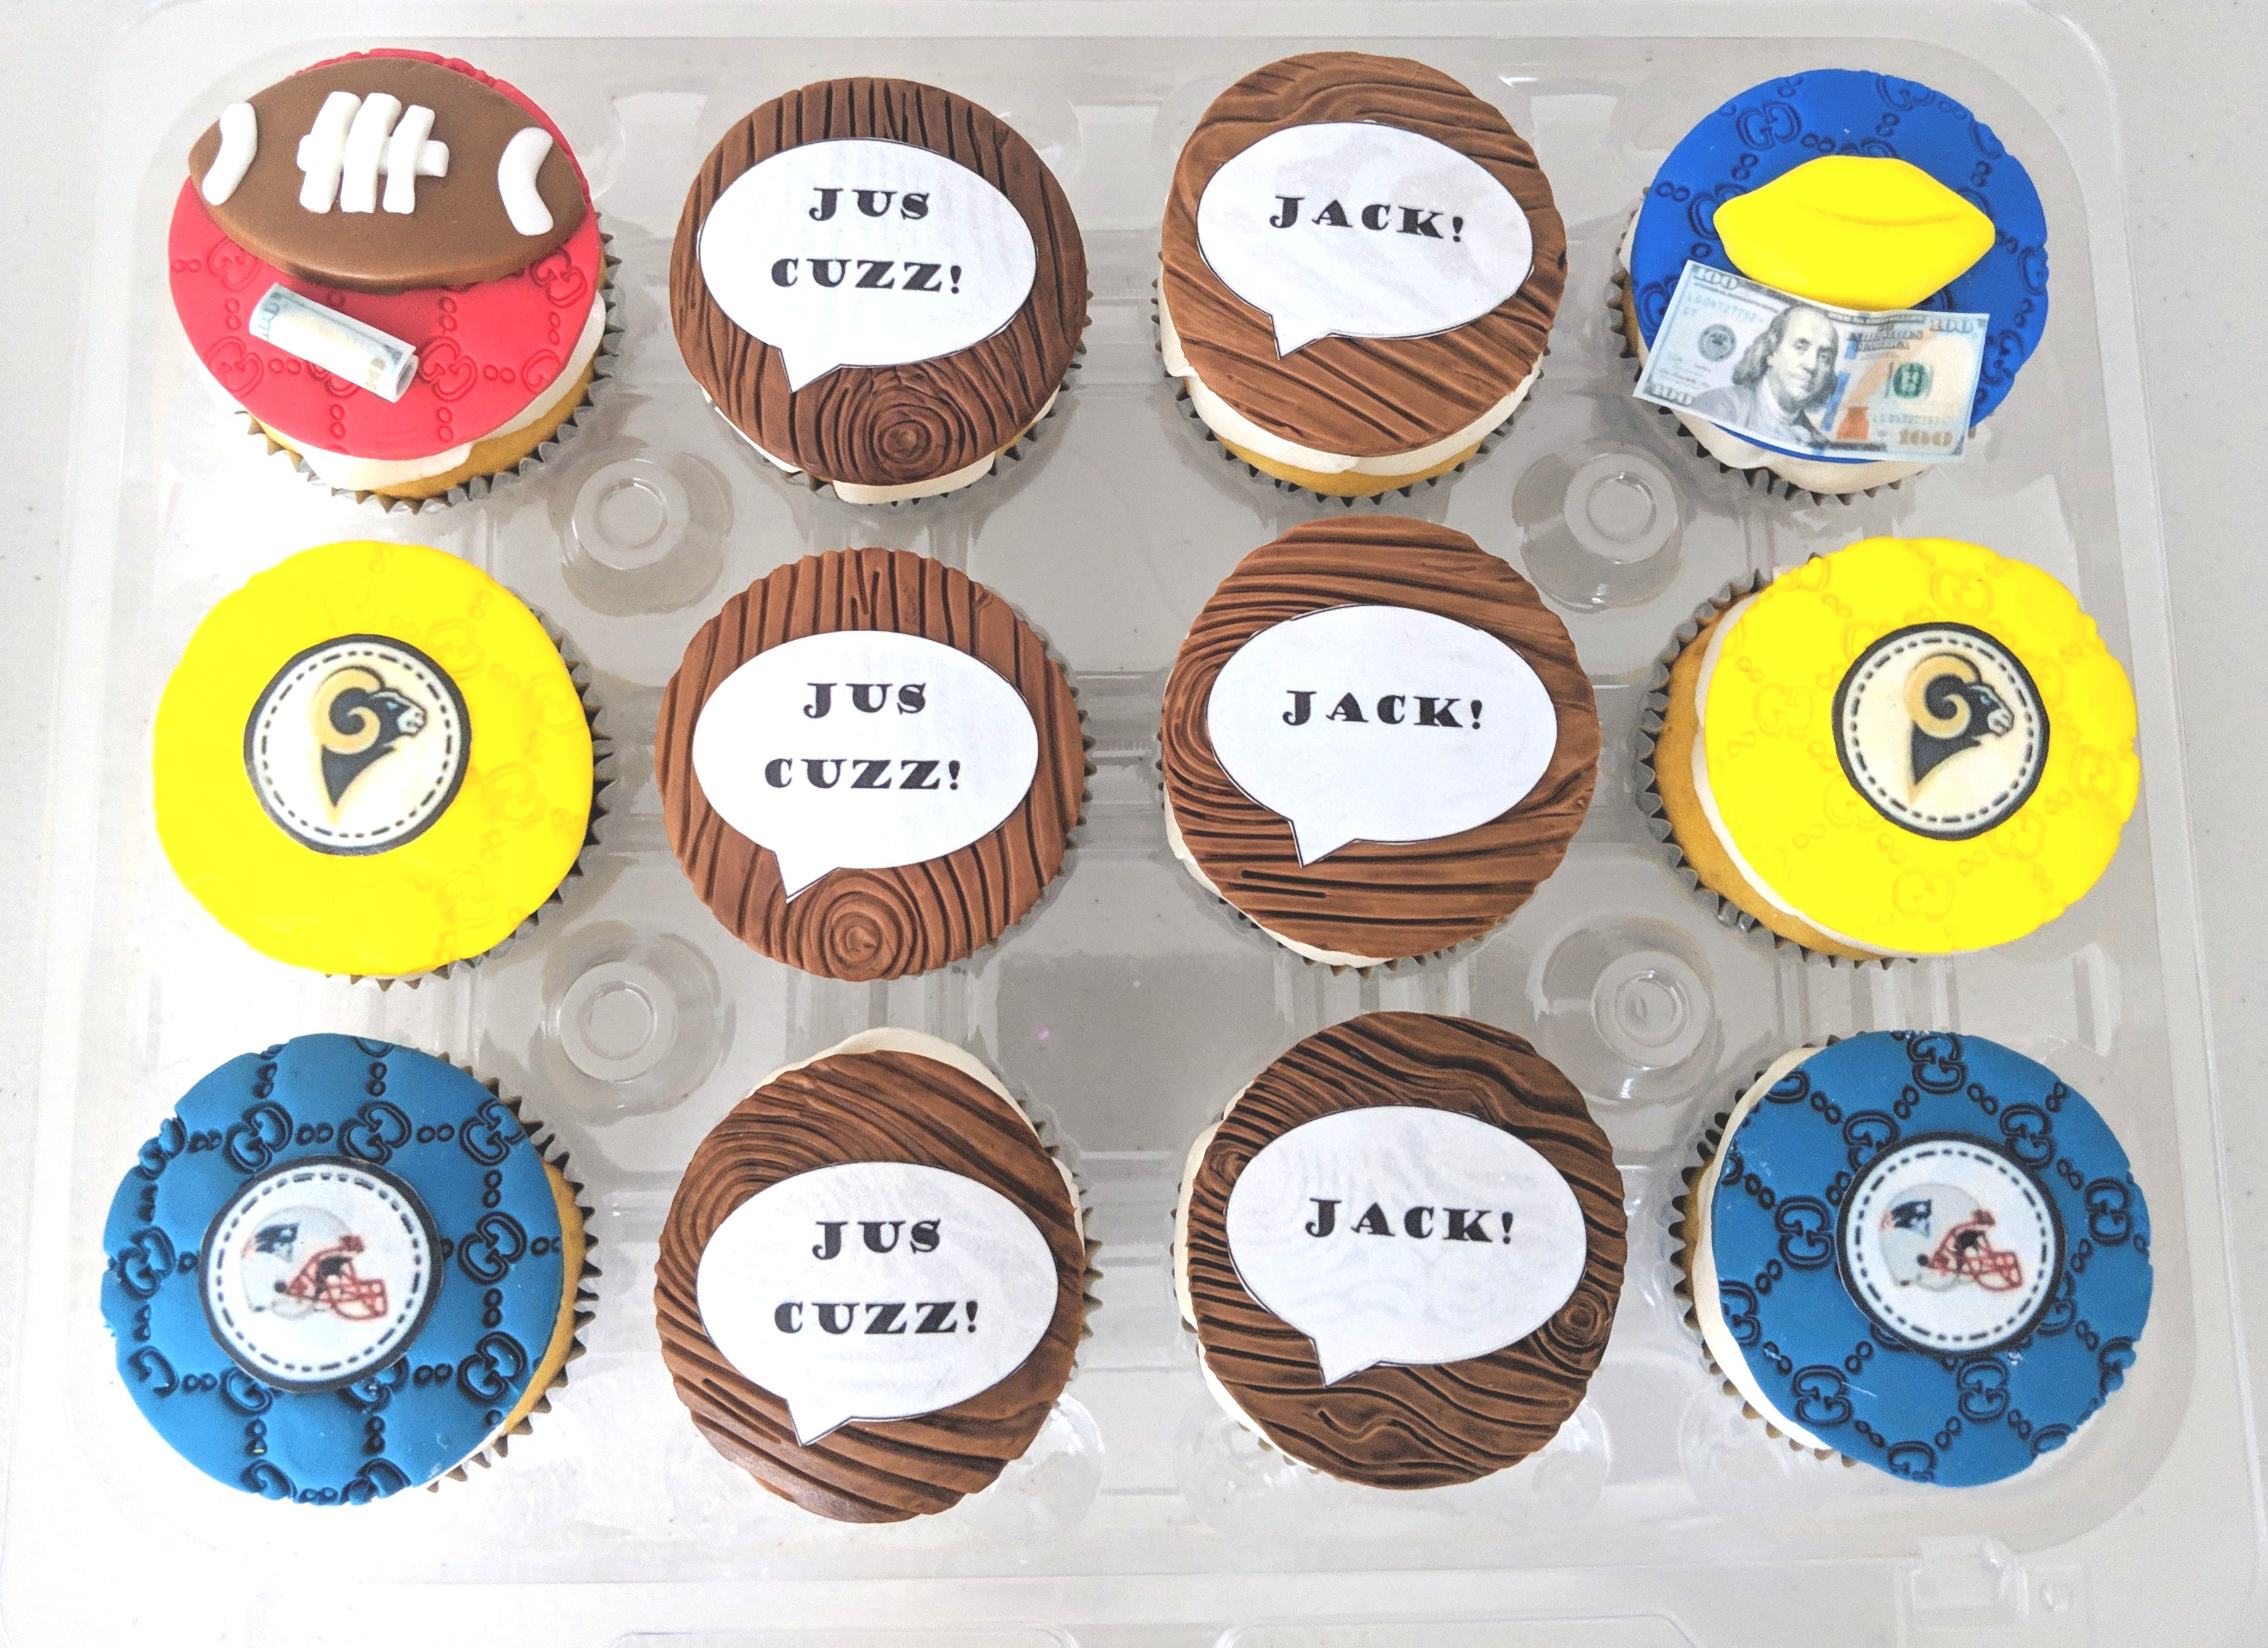 Super Bowl VIII Cupcakes